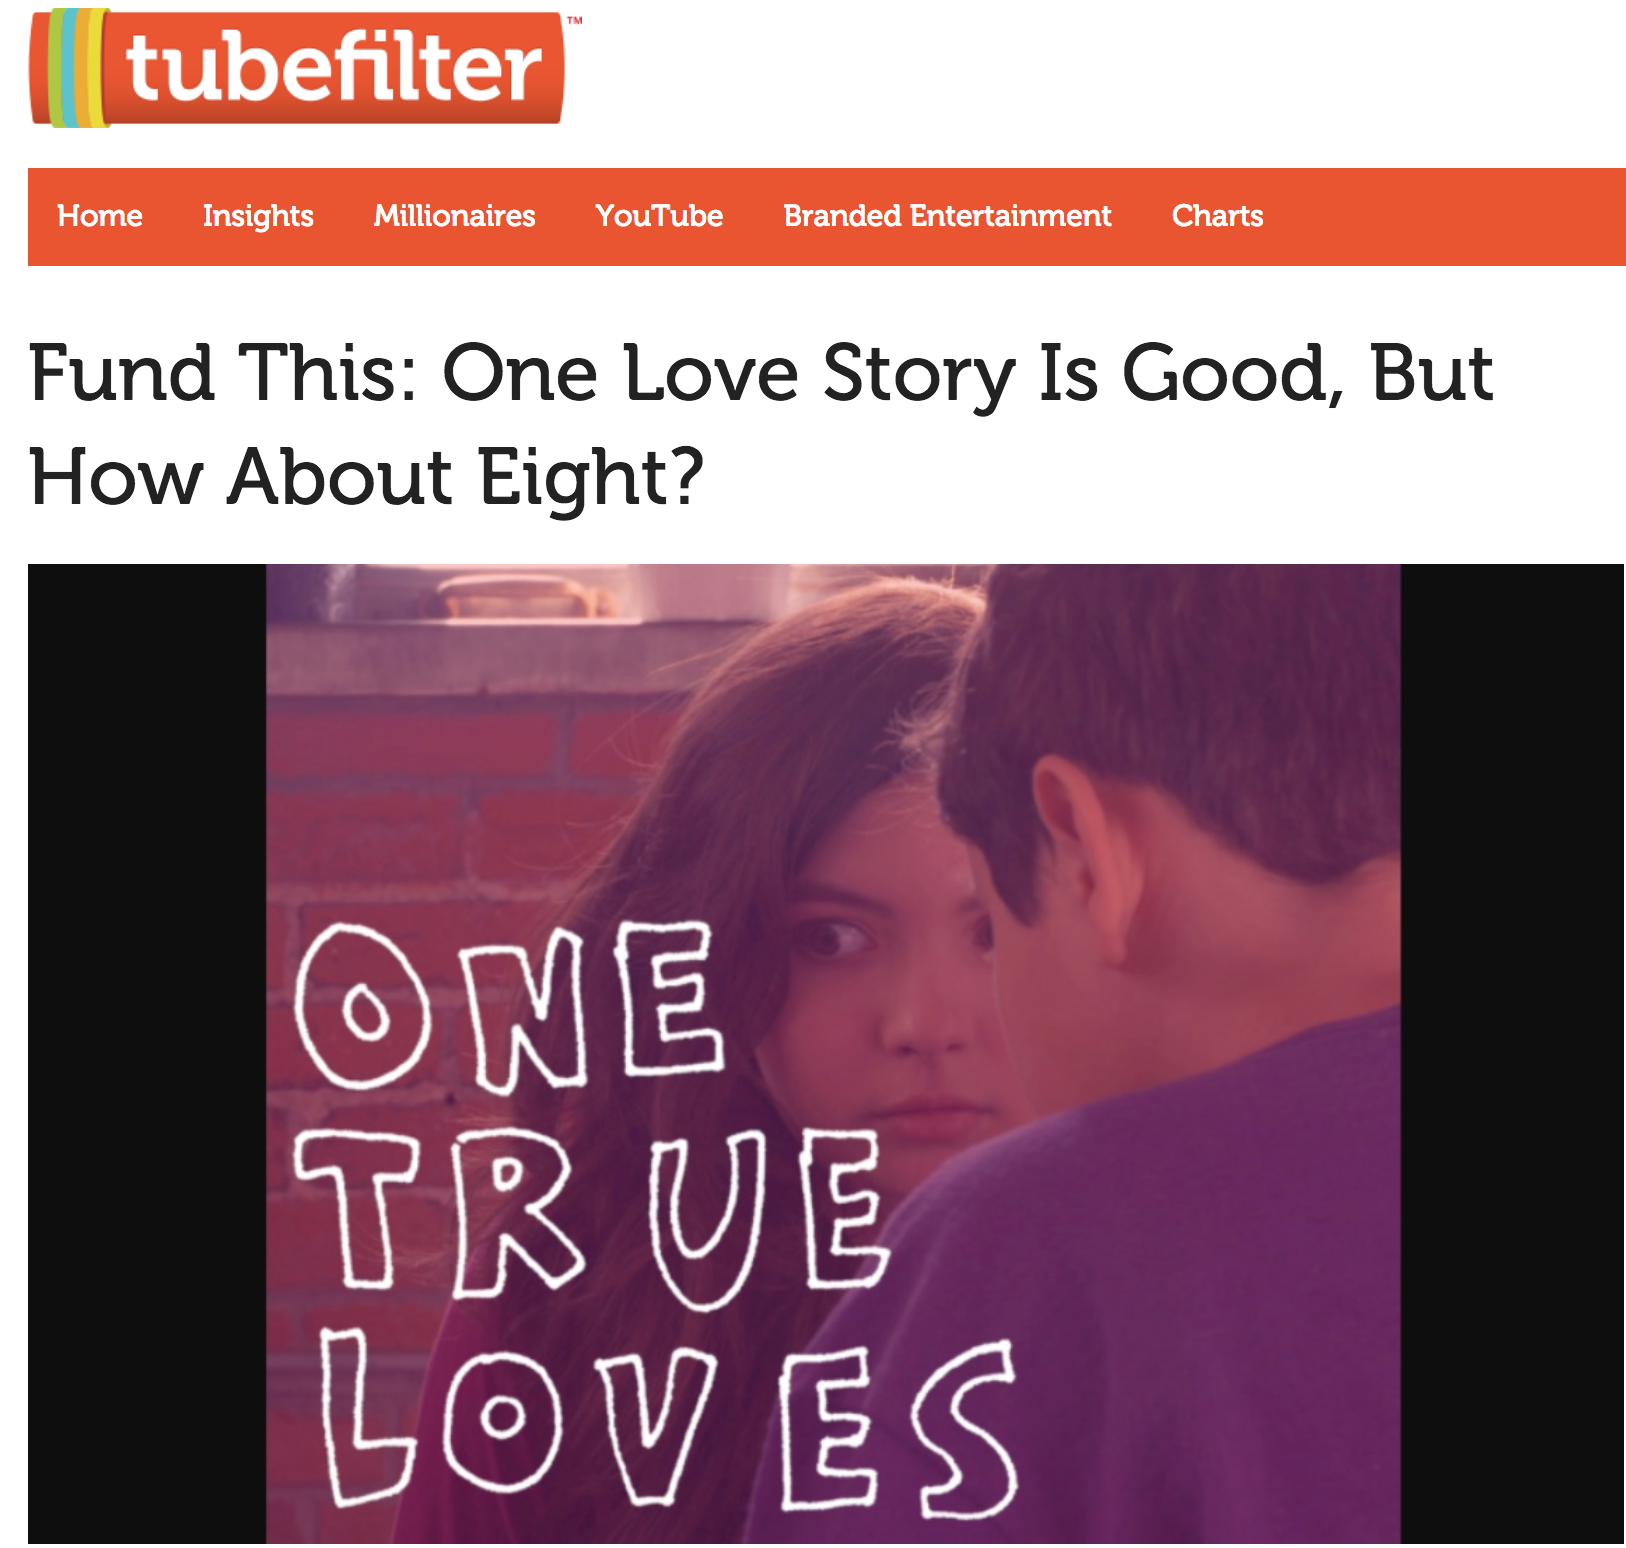 Fund This: One Love Story Is Good, But How About Eight? -